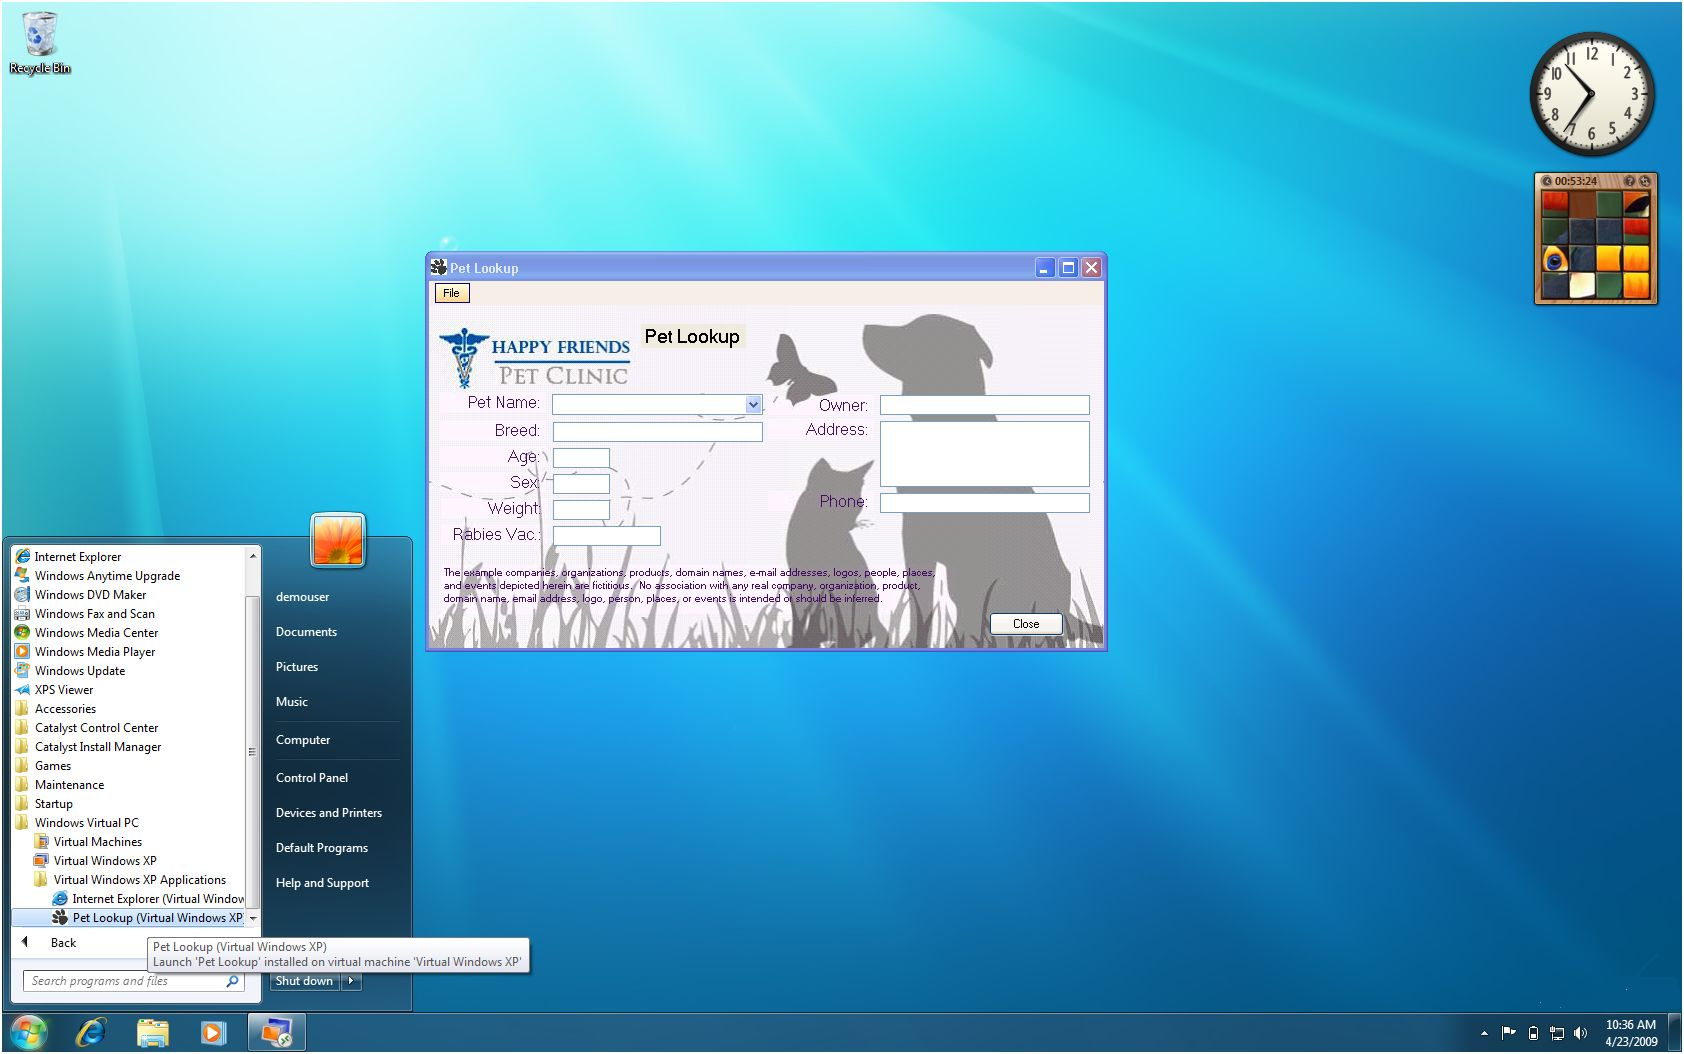 Microsoft XP Mode for Windows 7 confirmed